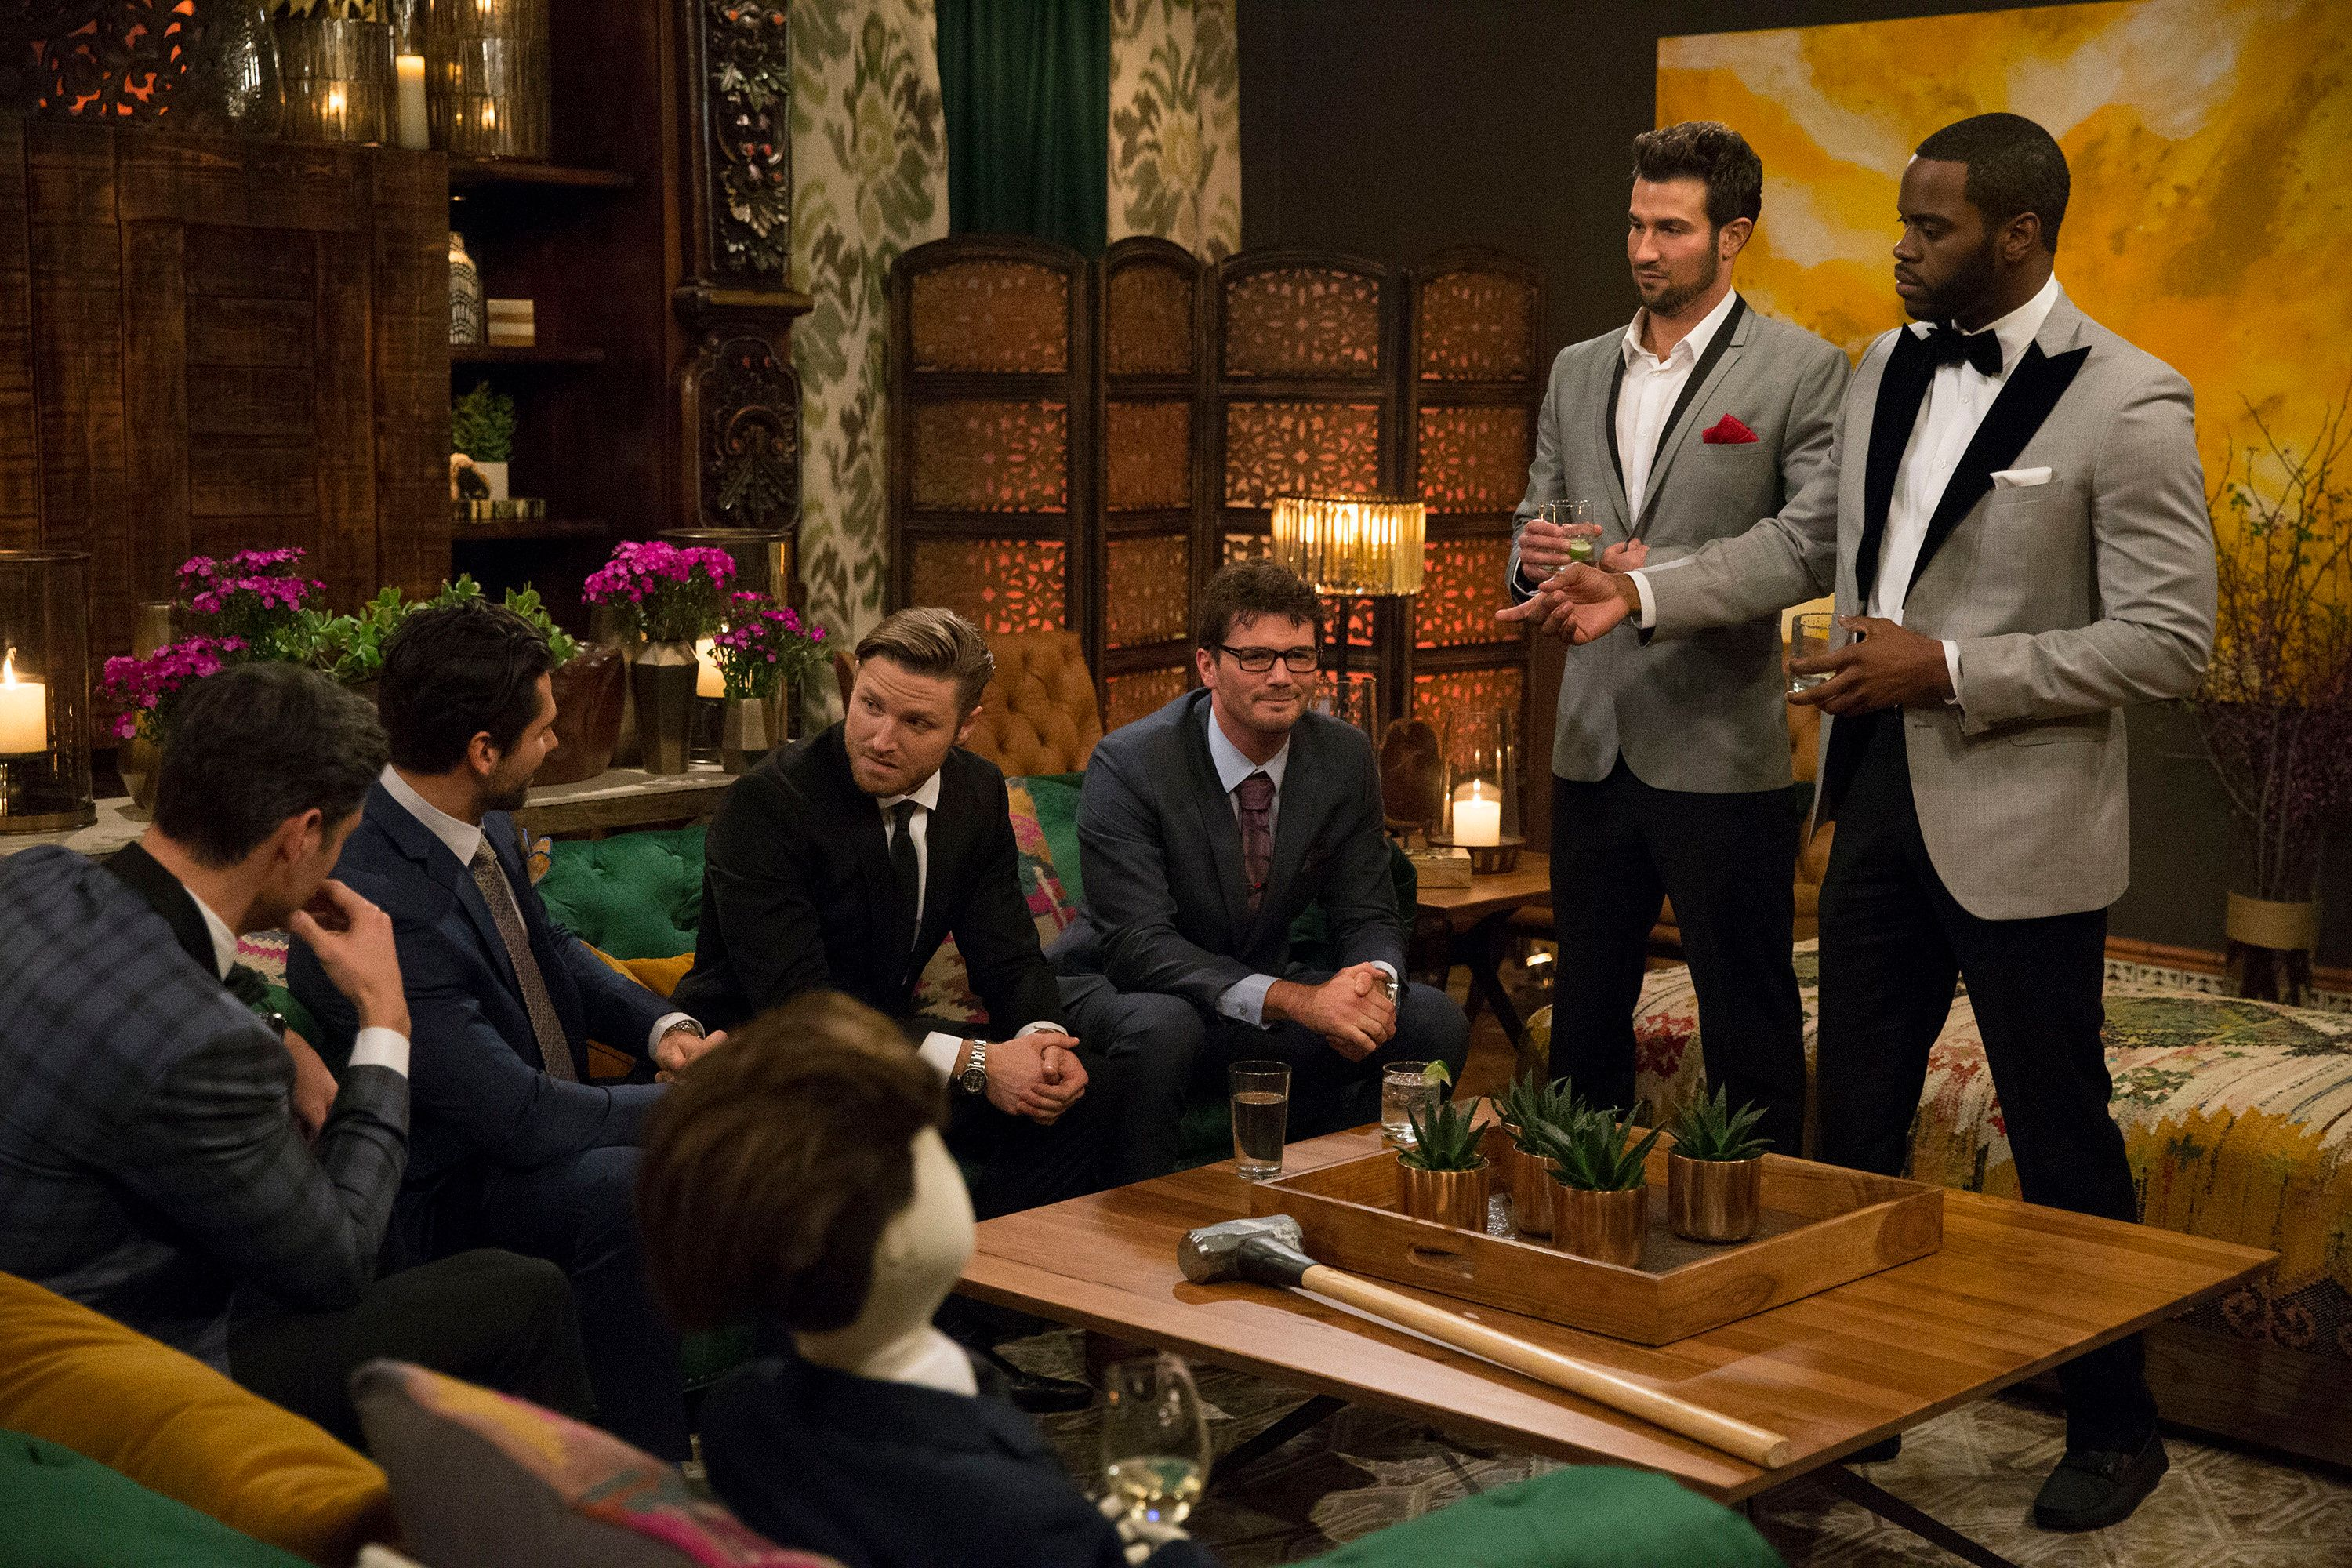 BACHELORETTE 13 - 'Episode 1301' - Accomplished Texas attorney Rachel Lindsay takes a recess from the courtroom to start her search for happily ever after in the 13th edition of ABC's hit series, 'The Bachelorette,' premiering at a special time, MONDAY, MAY 22 (9:01-11:00 p.m. EDT), on The ABC Television Network. (Paul Hebert/ABC via Getty Images) BRYAN, ALEX, BLAKE E., KENNETH ROBERT, BRYAN, JOSIAH